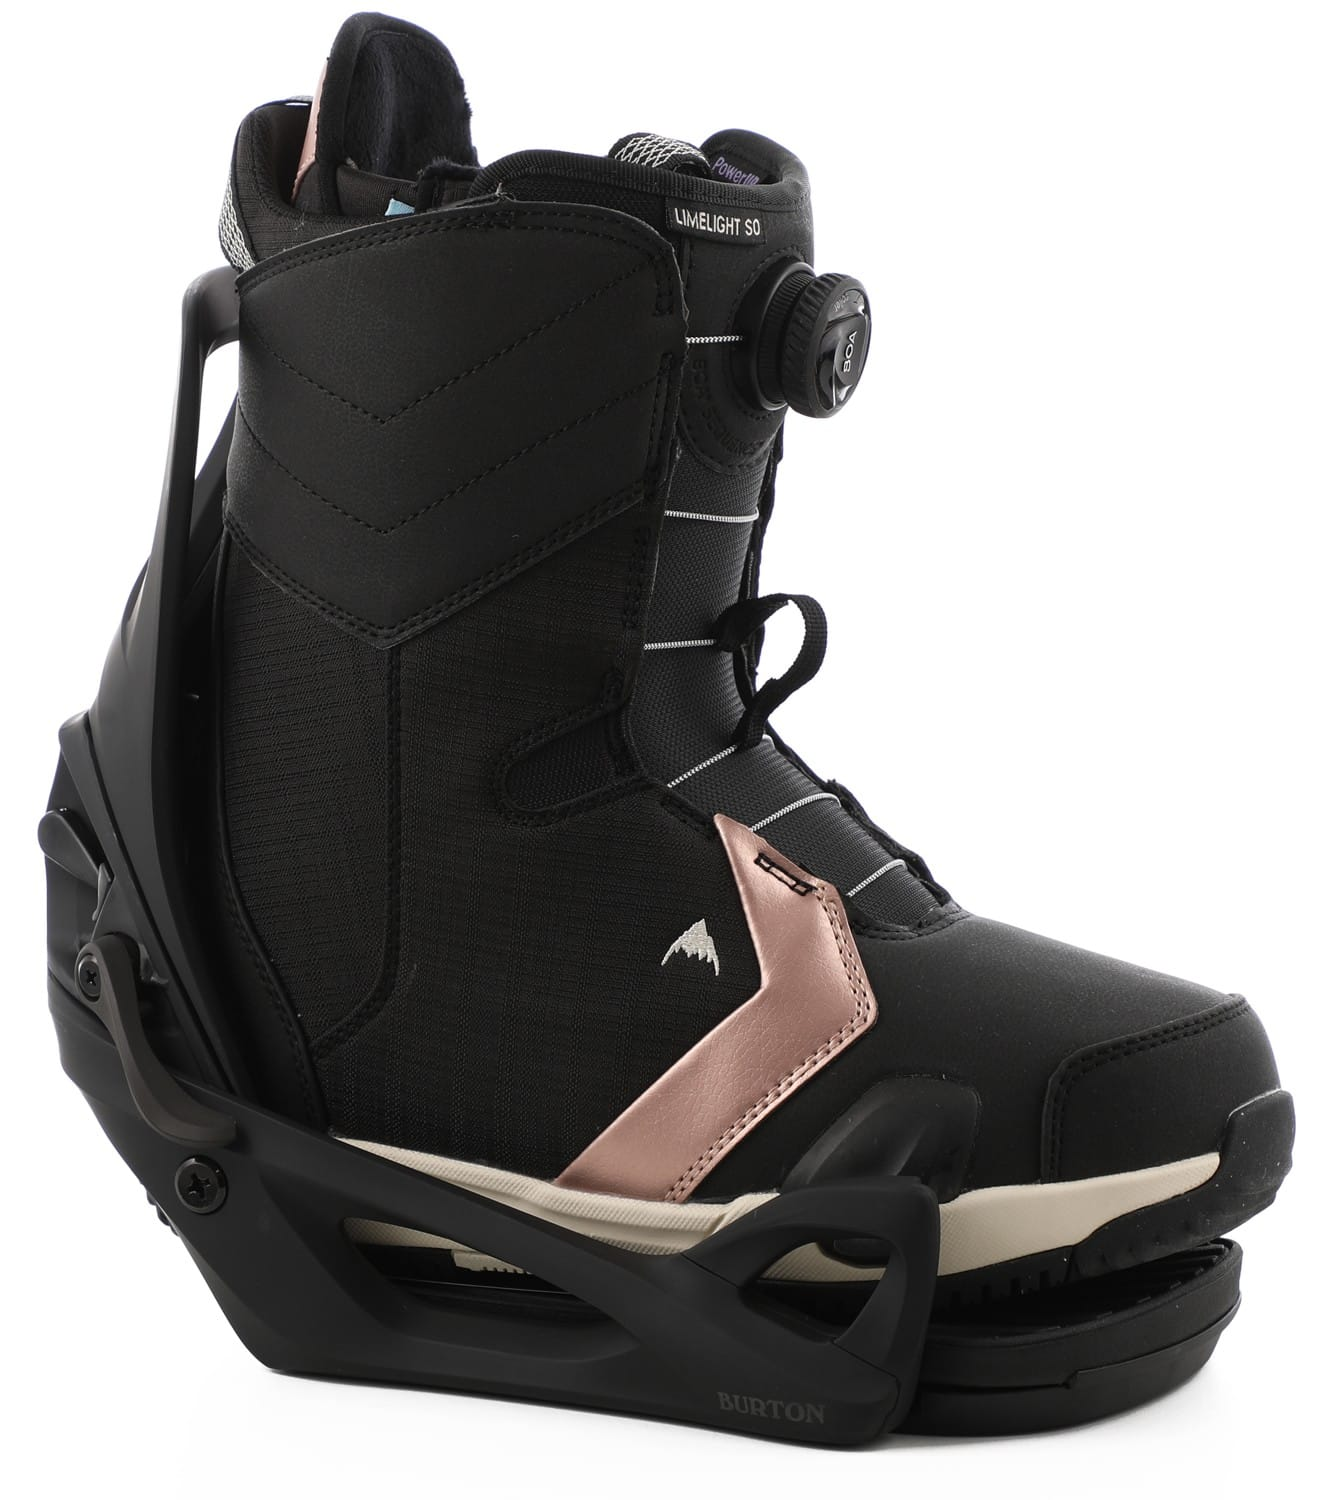 Burton Limelight Step On Snowboard Boots/Bindings Package